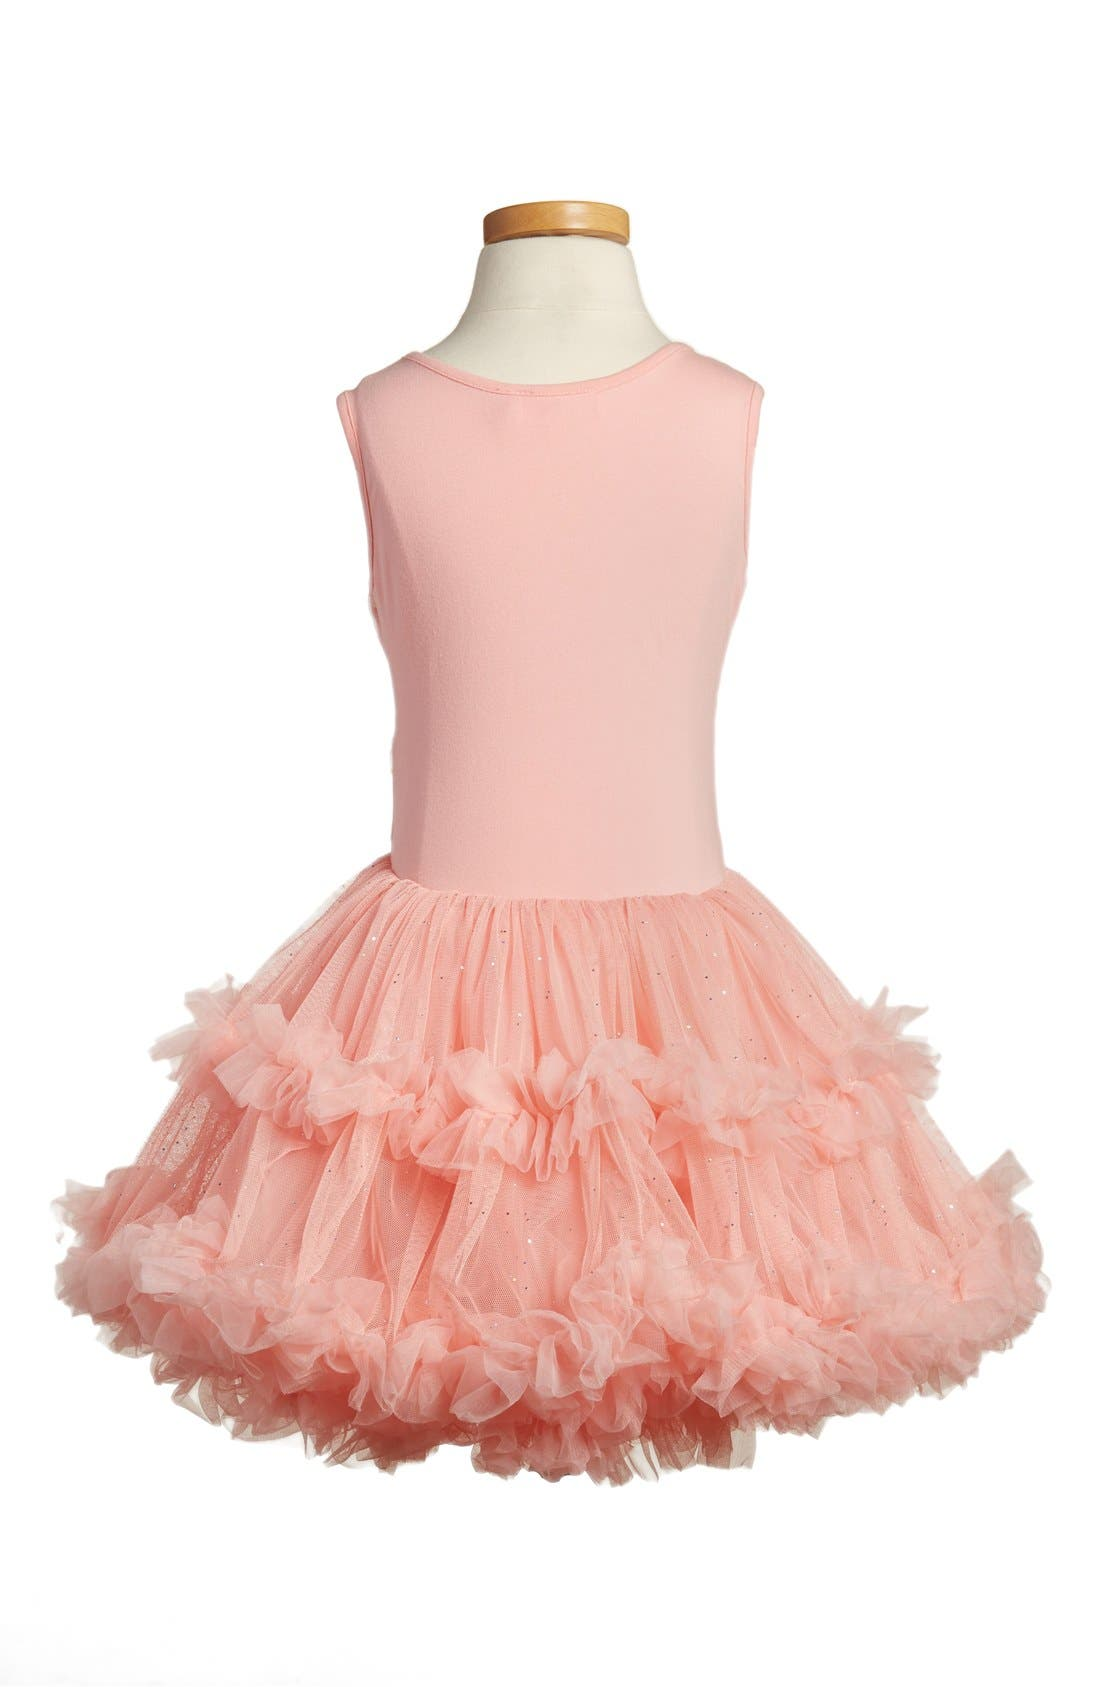 'Butterfly' Sleeveless Party Dress,                             Alternate thumbnail 3, color,                             PEACH